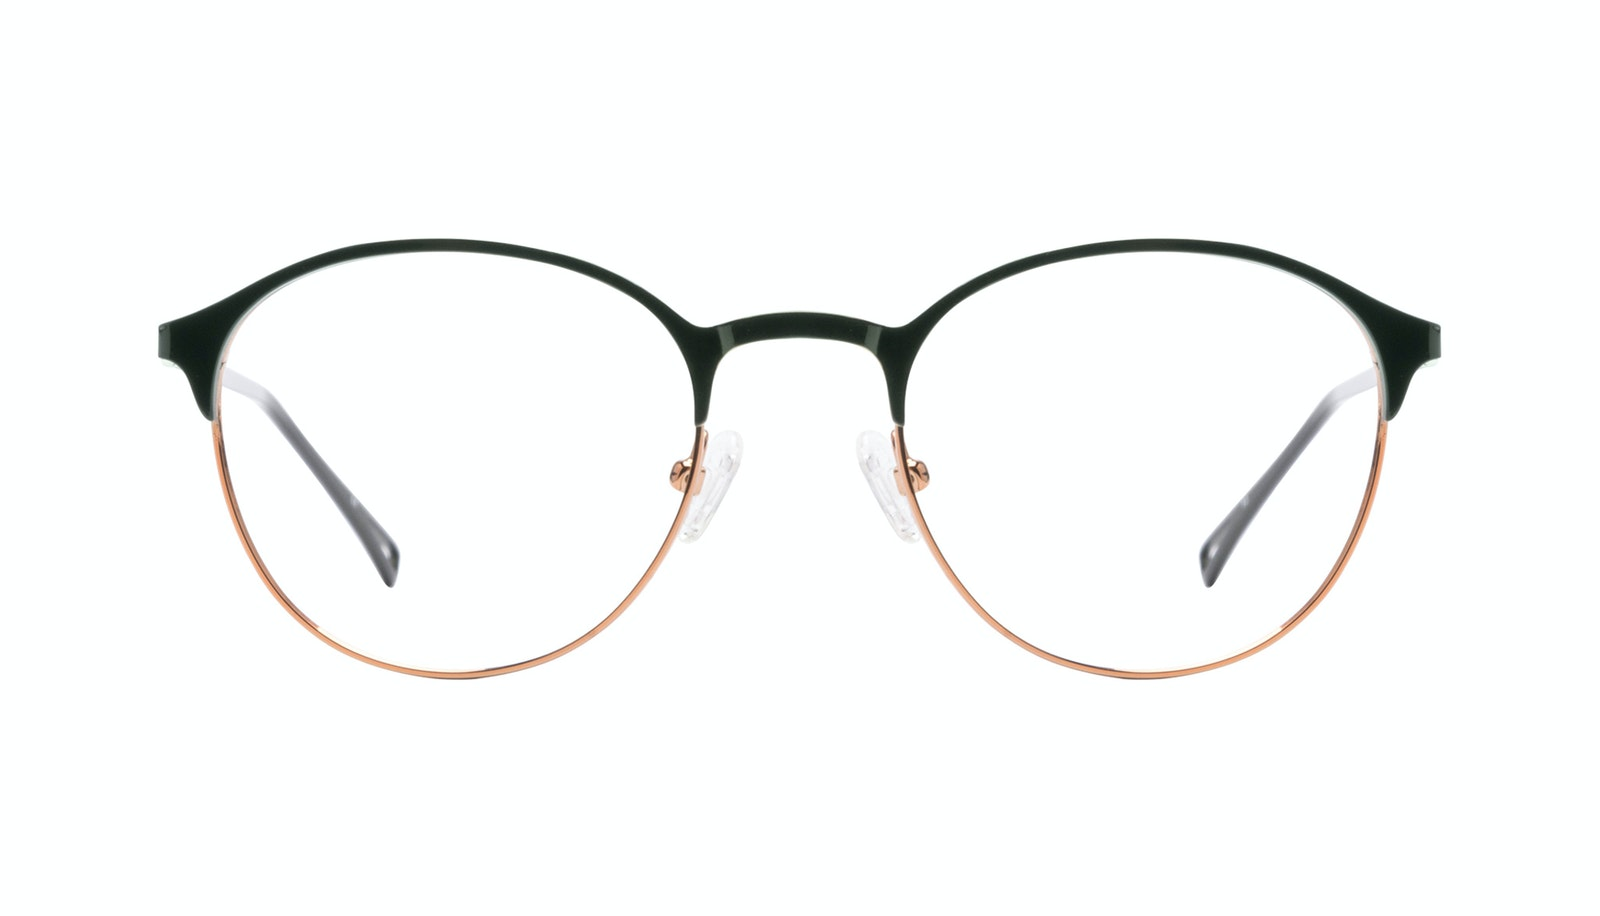 Affordable Fashion Glasses Round Eyeglasses Women Bay Emeraude